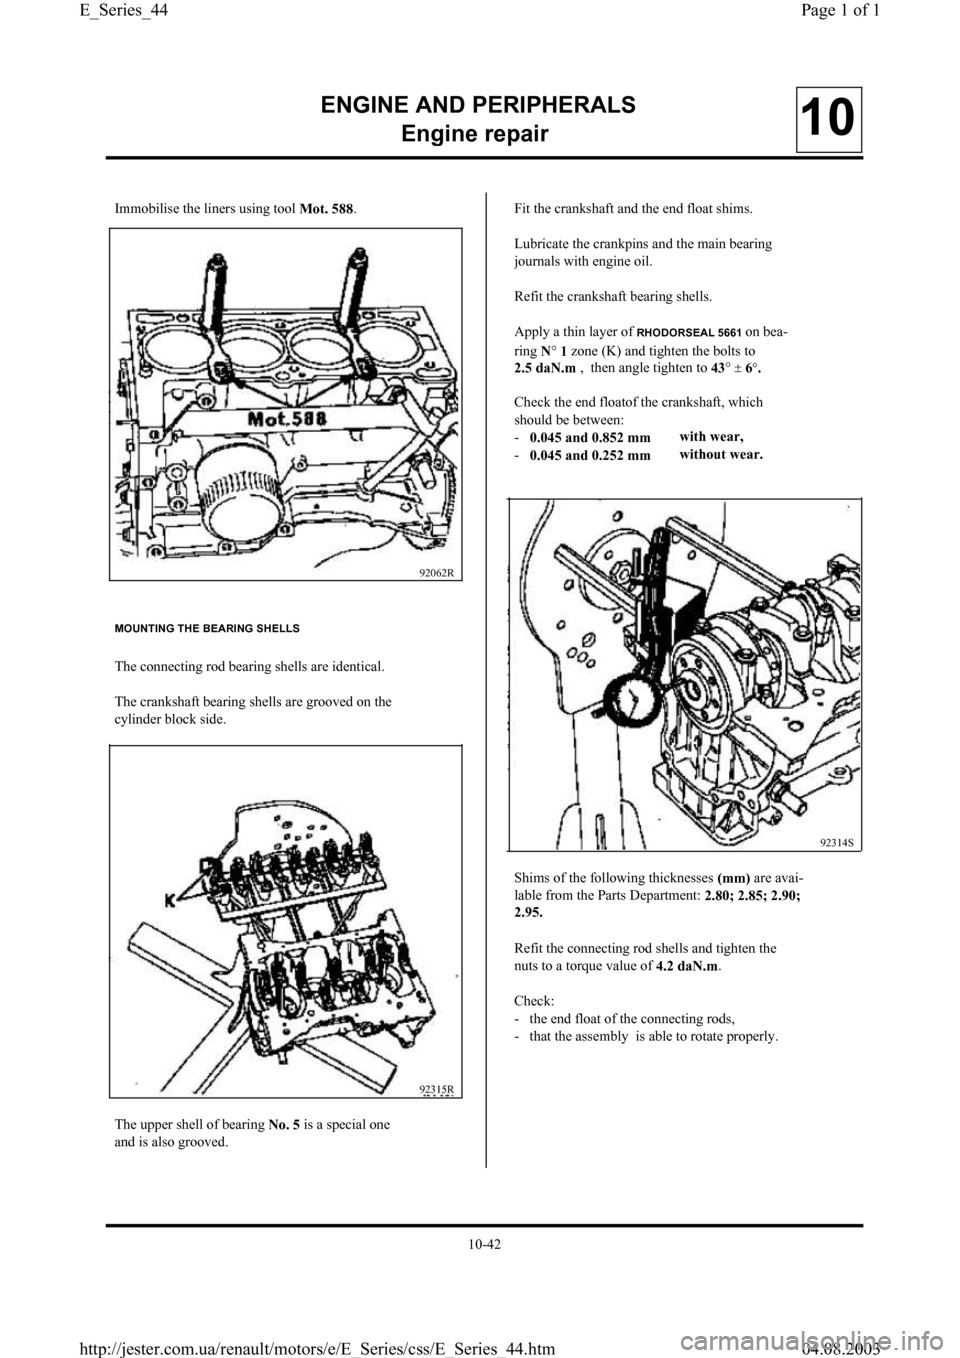 RENAULT CLIO 1997 X57 / 1.G Petrol Engines Workshop Manual, Page 44